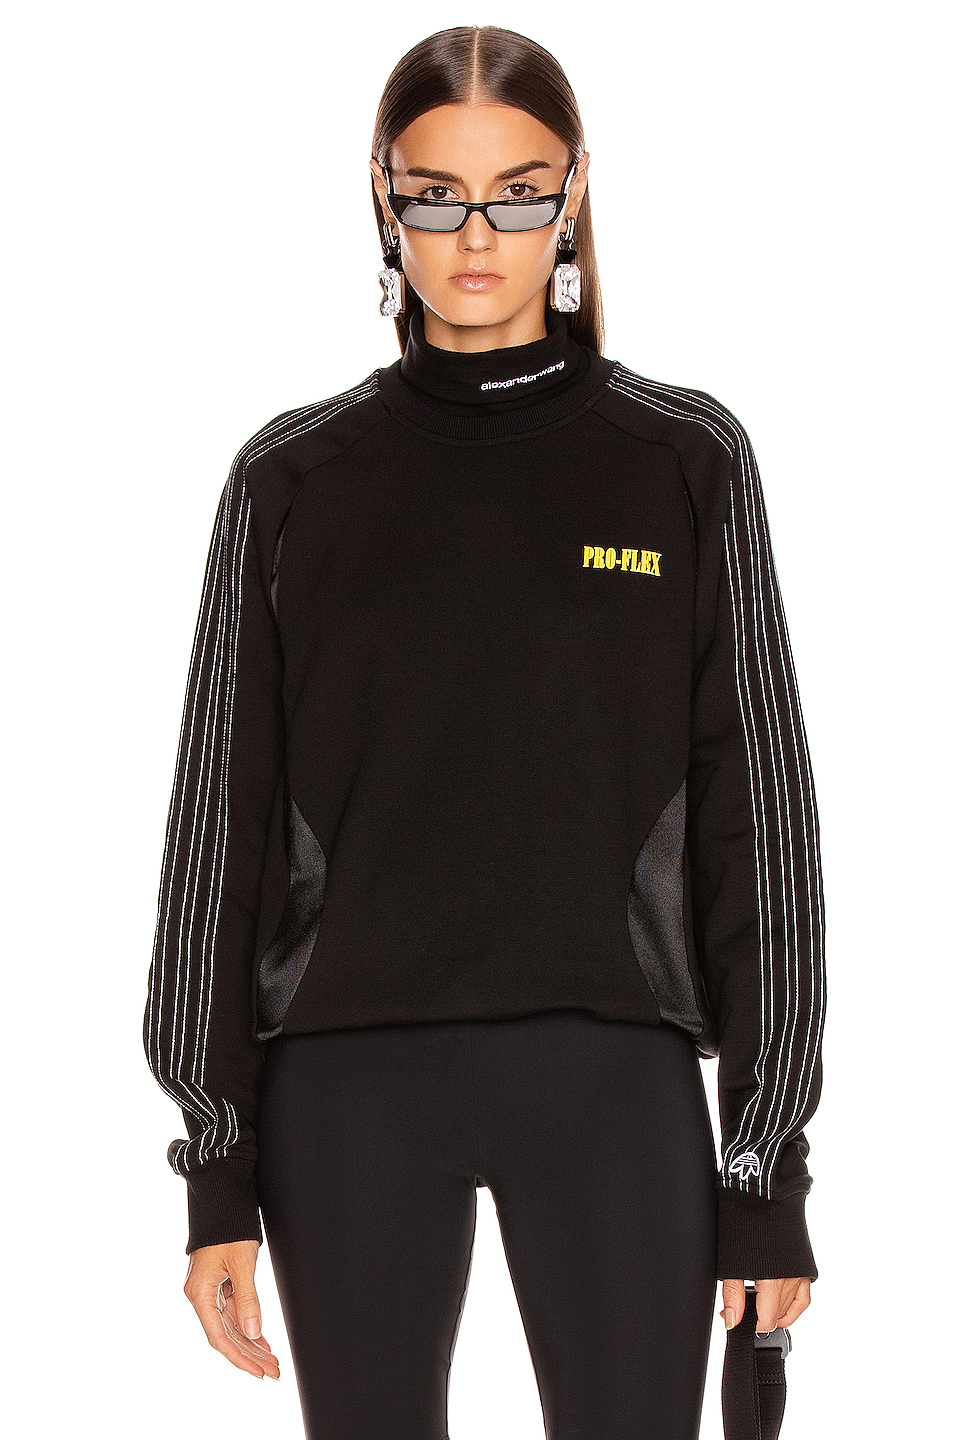 4a4267c1727 Buy Original adidas by Alexander Wang Wangbody Sweatshirt at ...